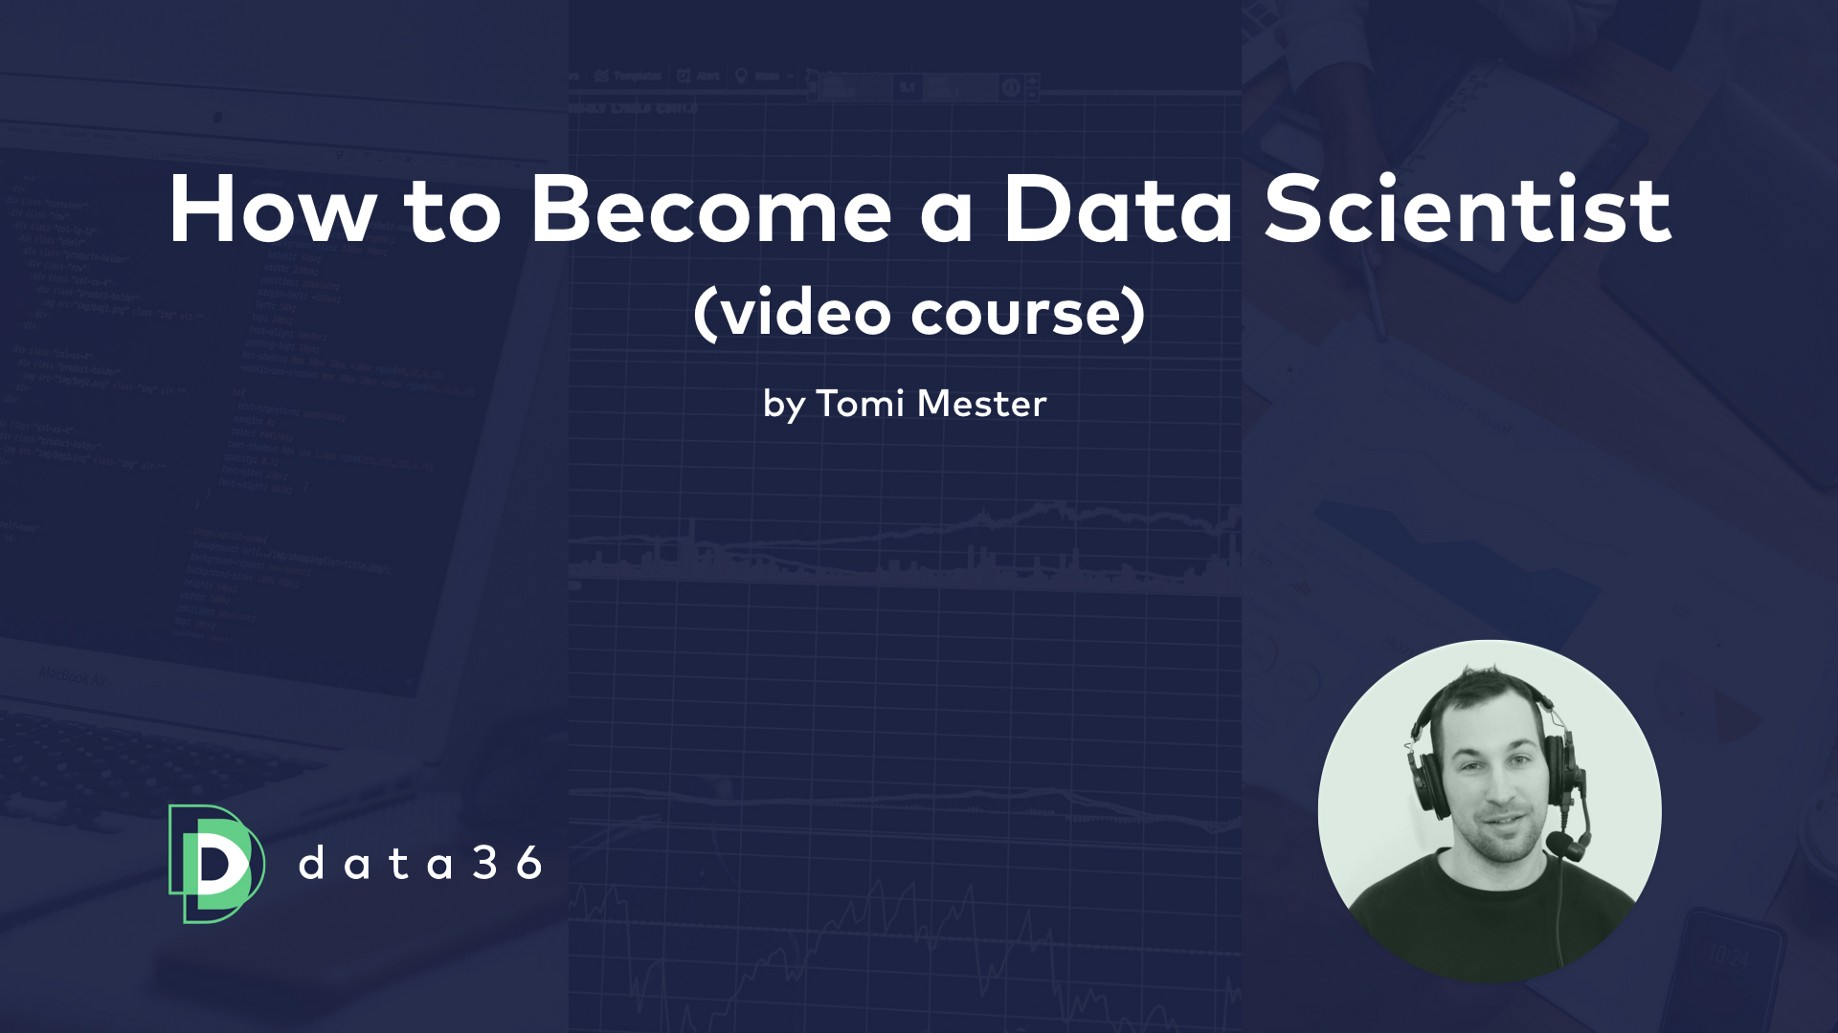 How to get your first job in Data Science? - Tomi Mester - Medium